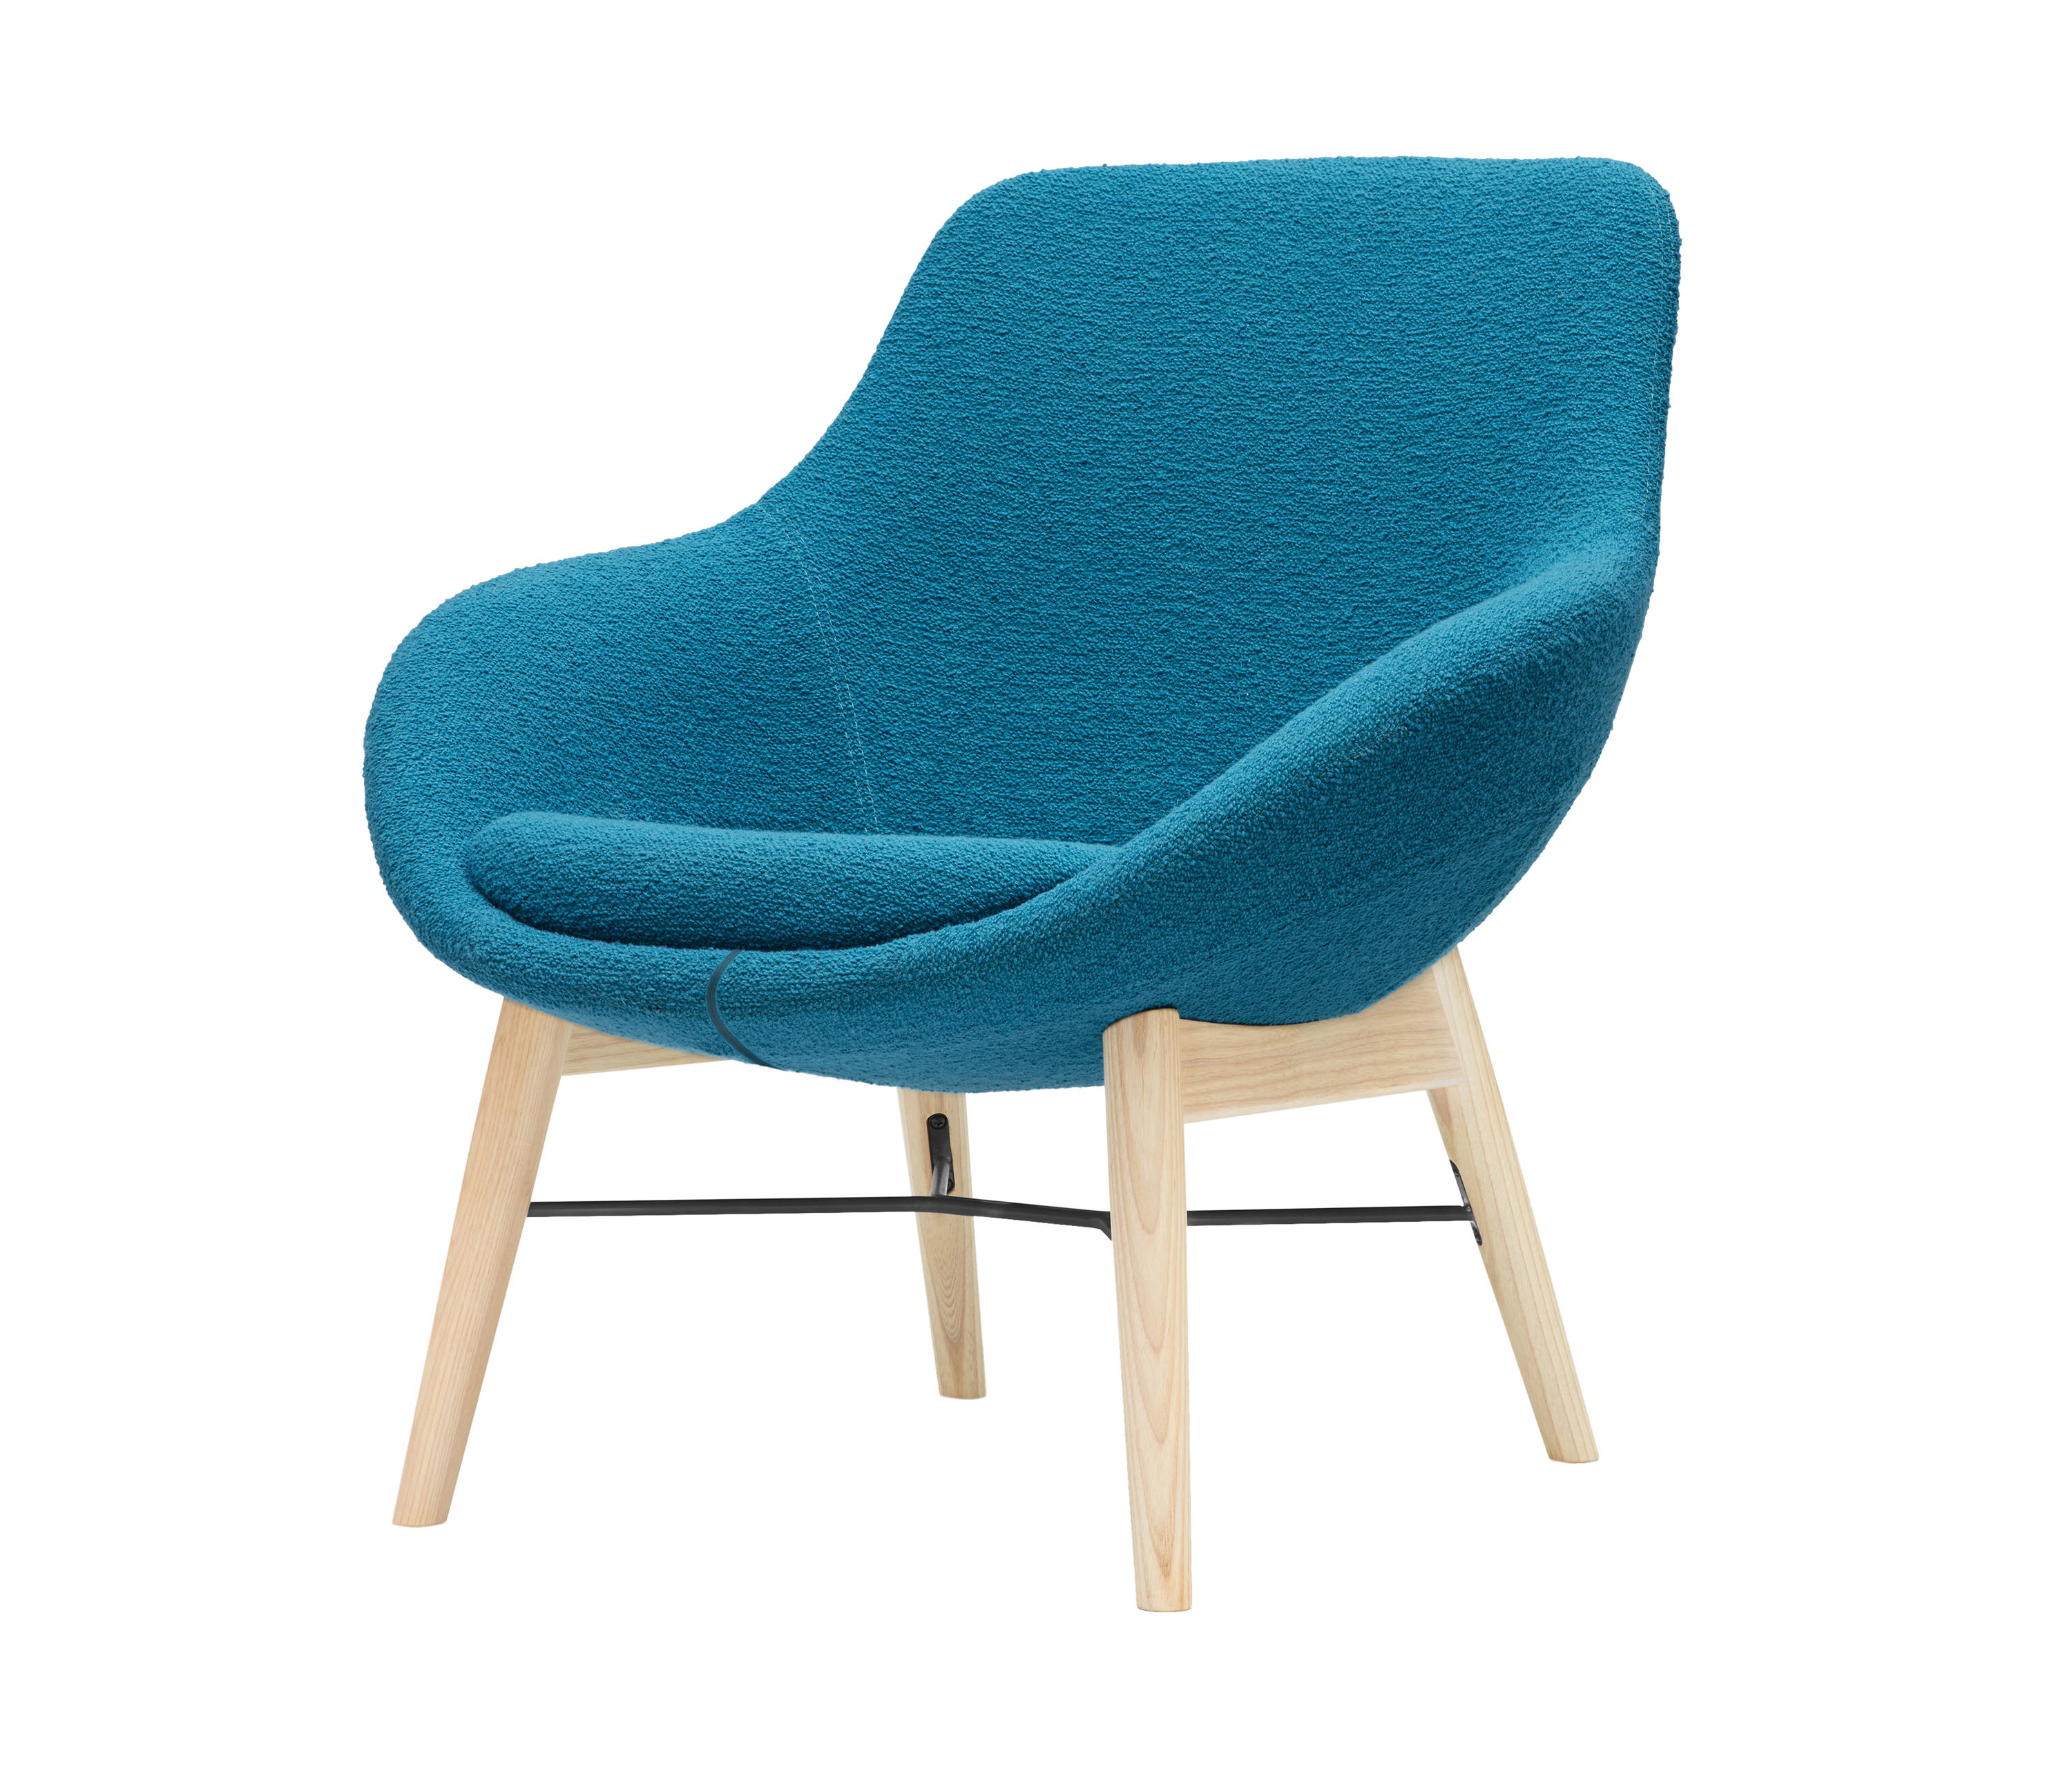 Ponder 68702 Lounge Chairs From Keilhauer Architonic